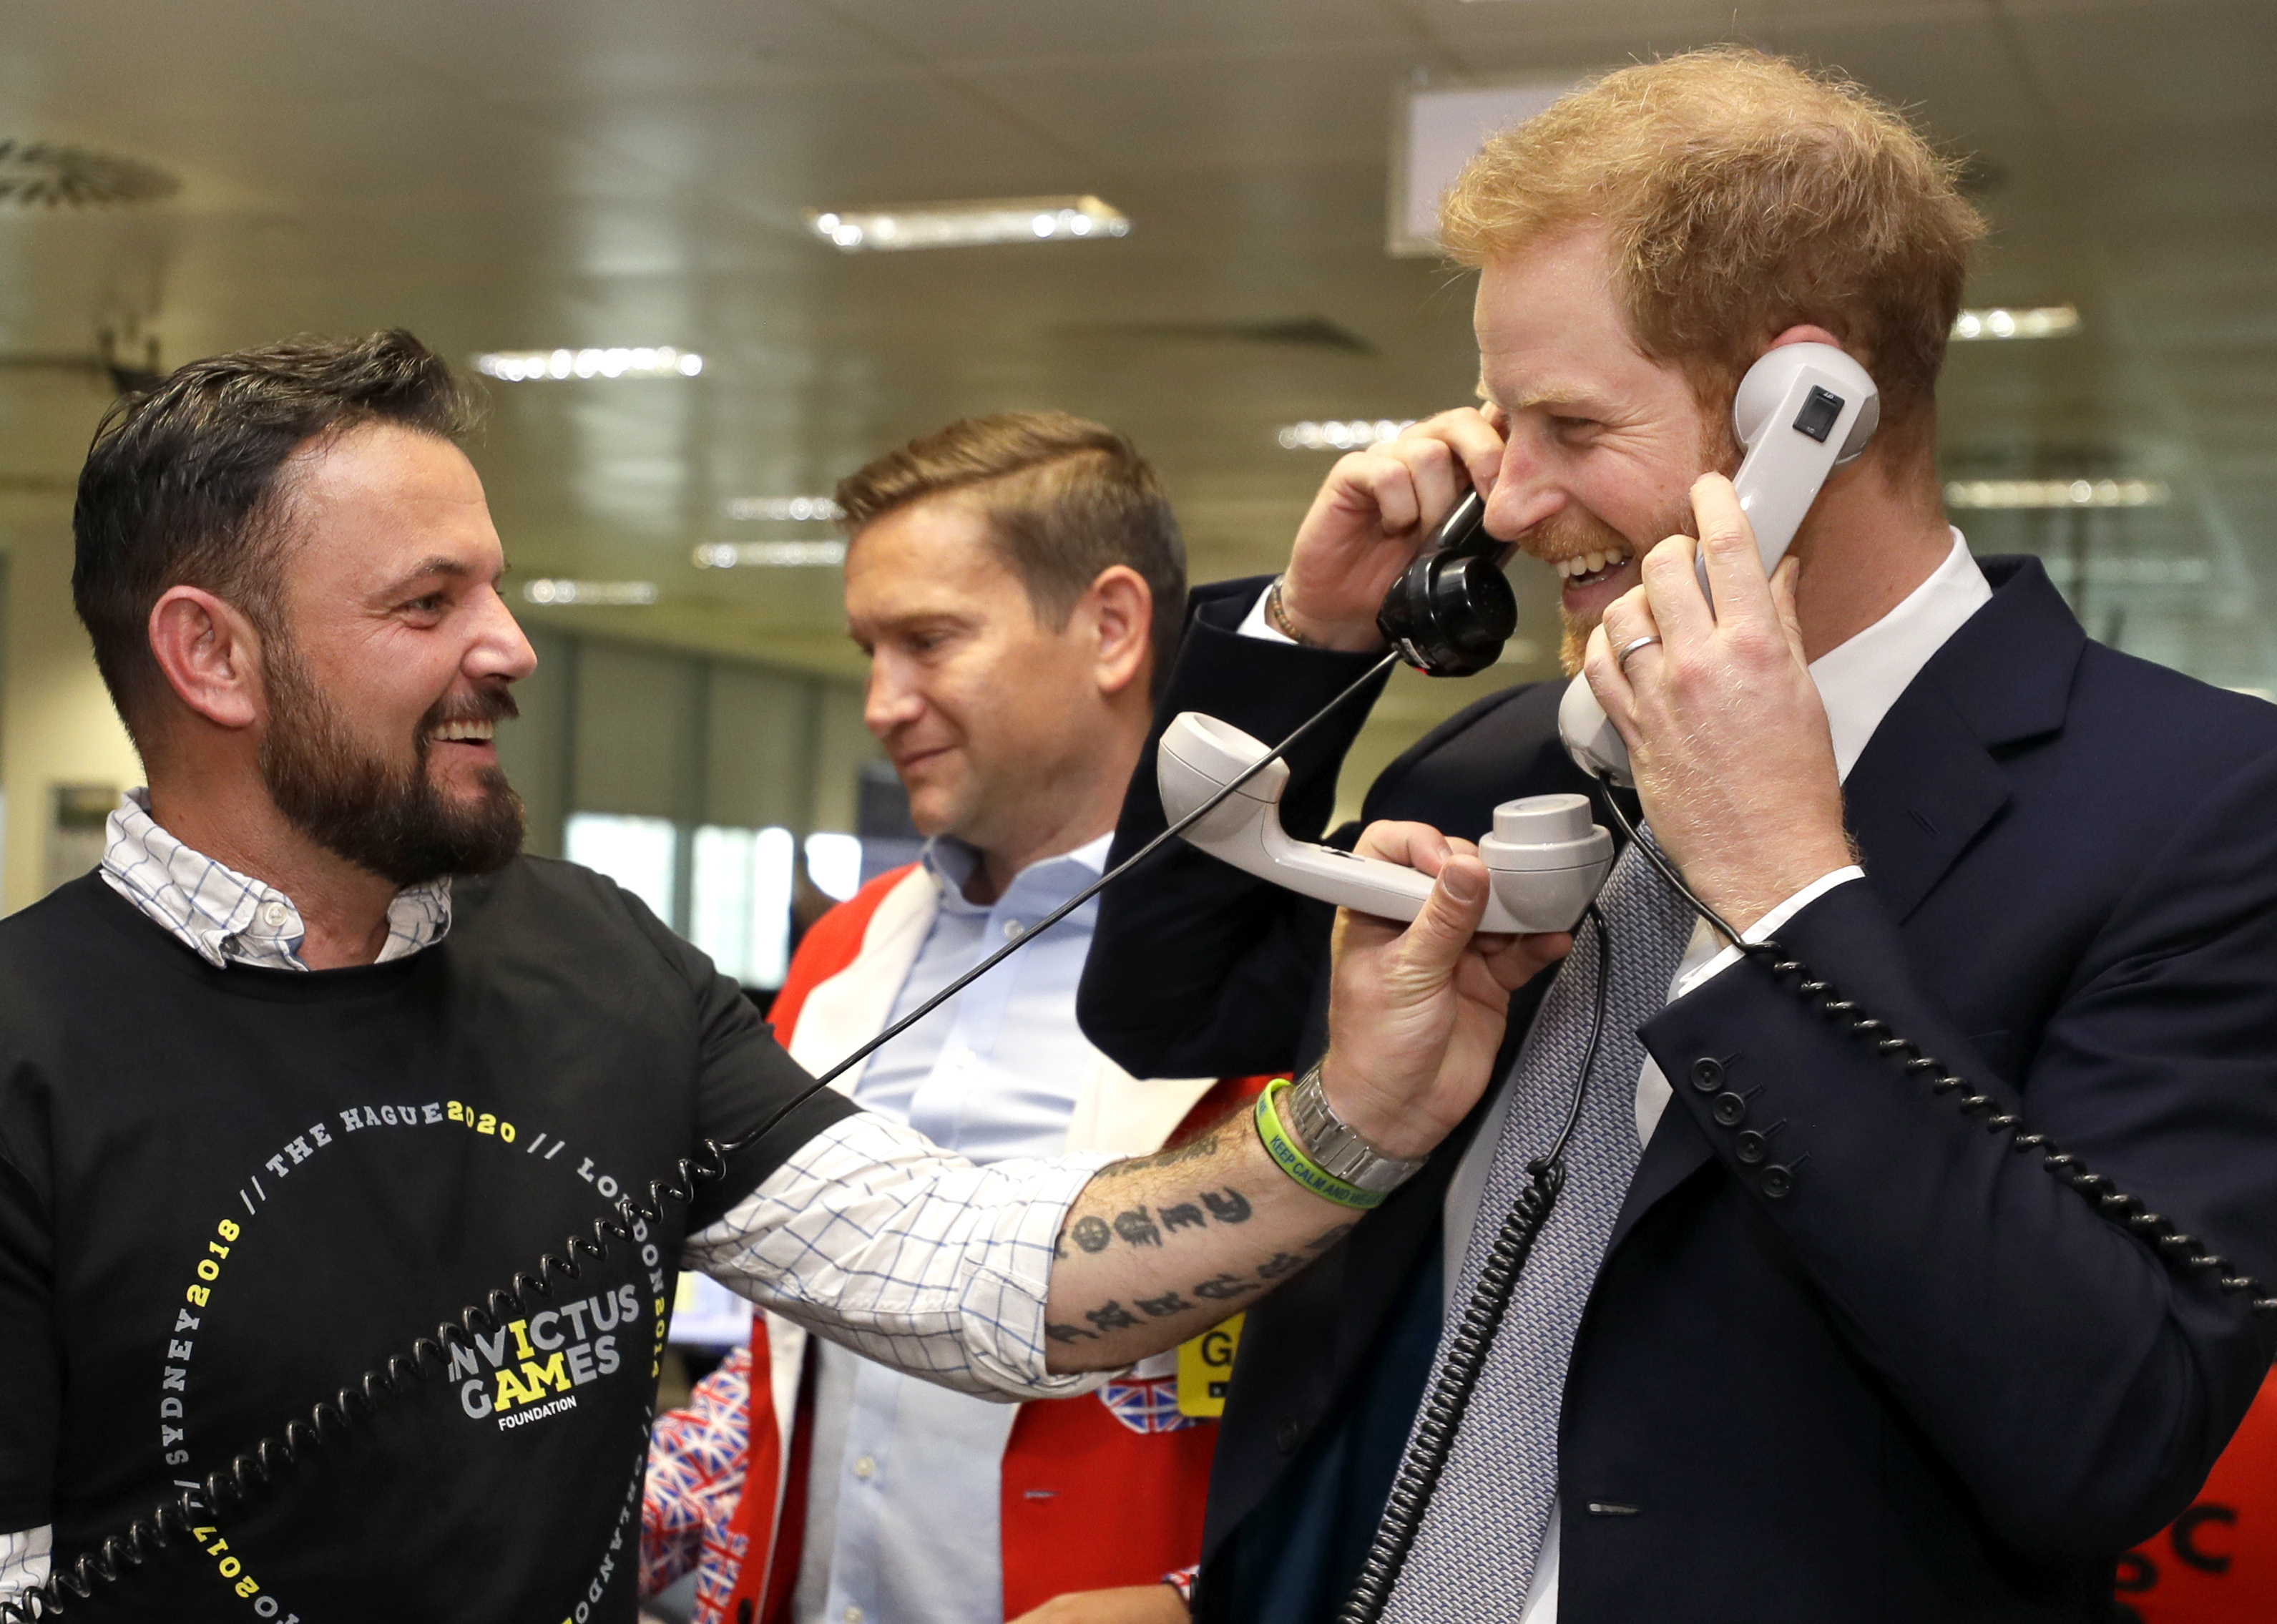 The Duke of Sussex helps to raise funds for Invictus Games at the annual BGC charity day